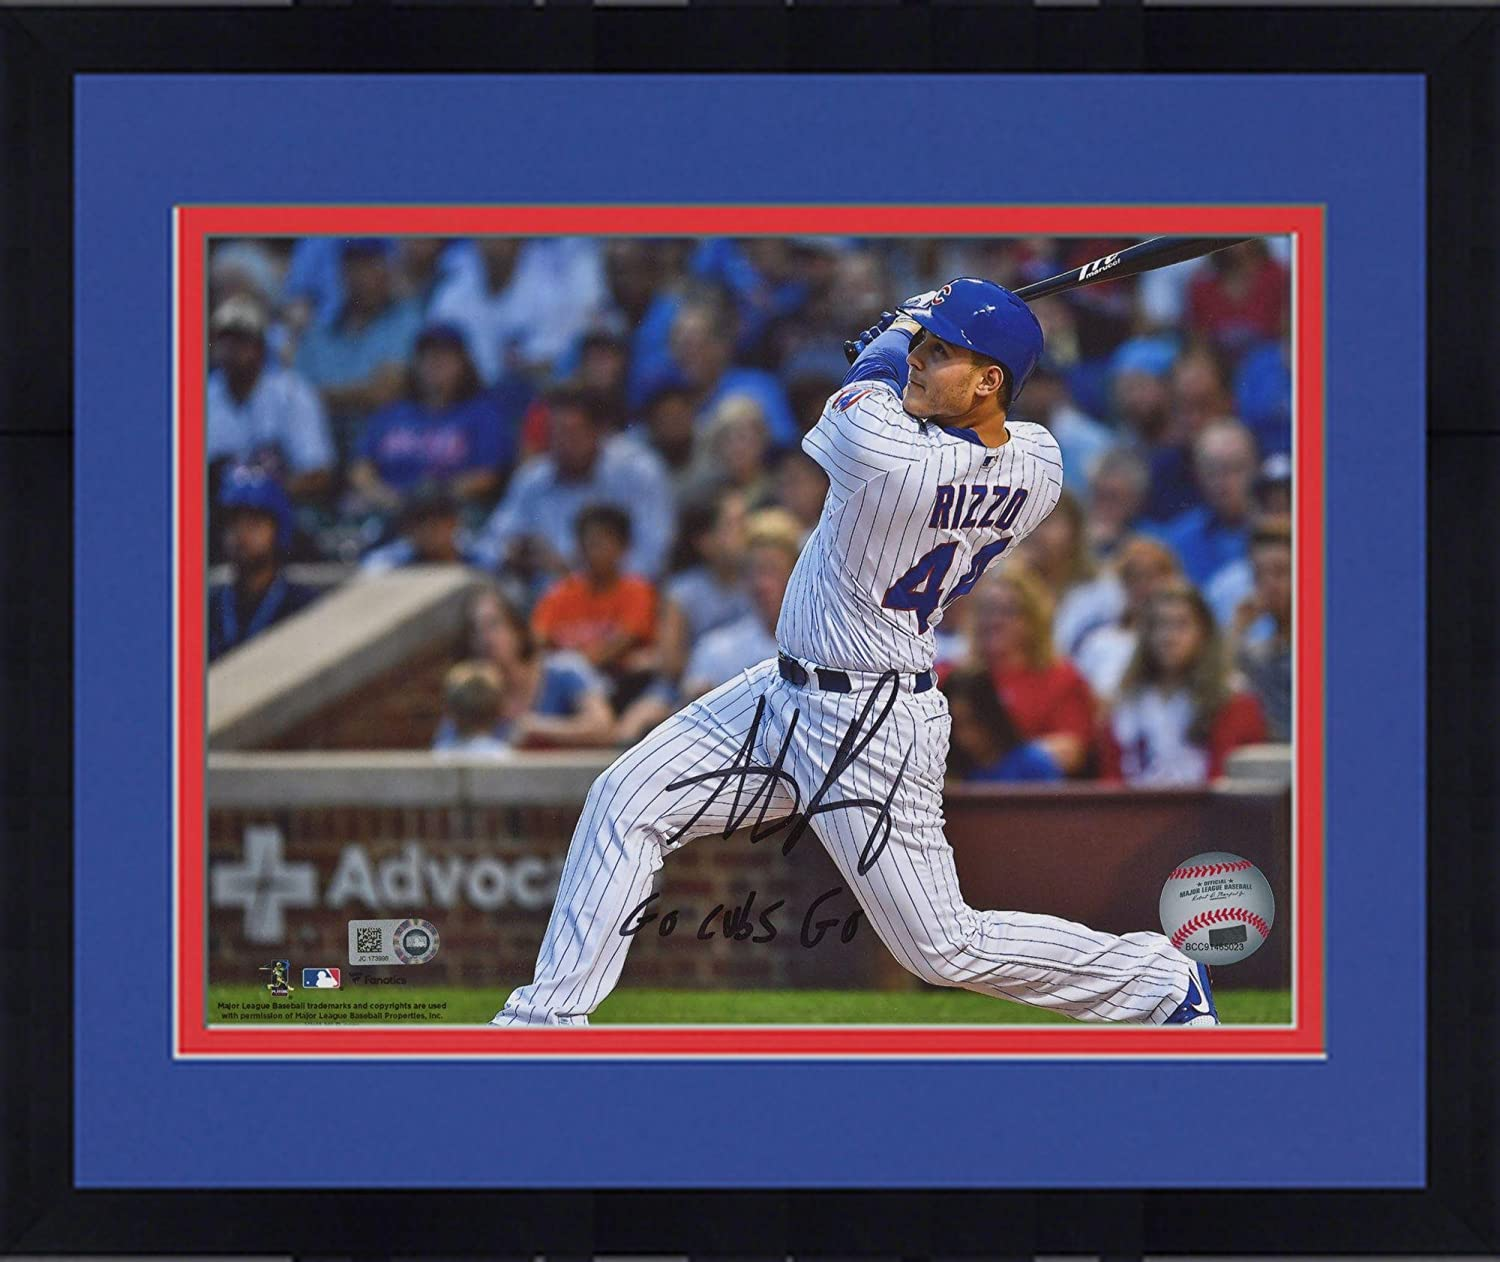 Framed Anthony Rizzo Chicago Cubs Autographed 8